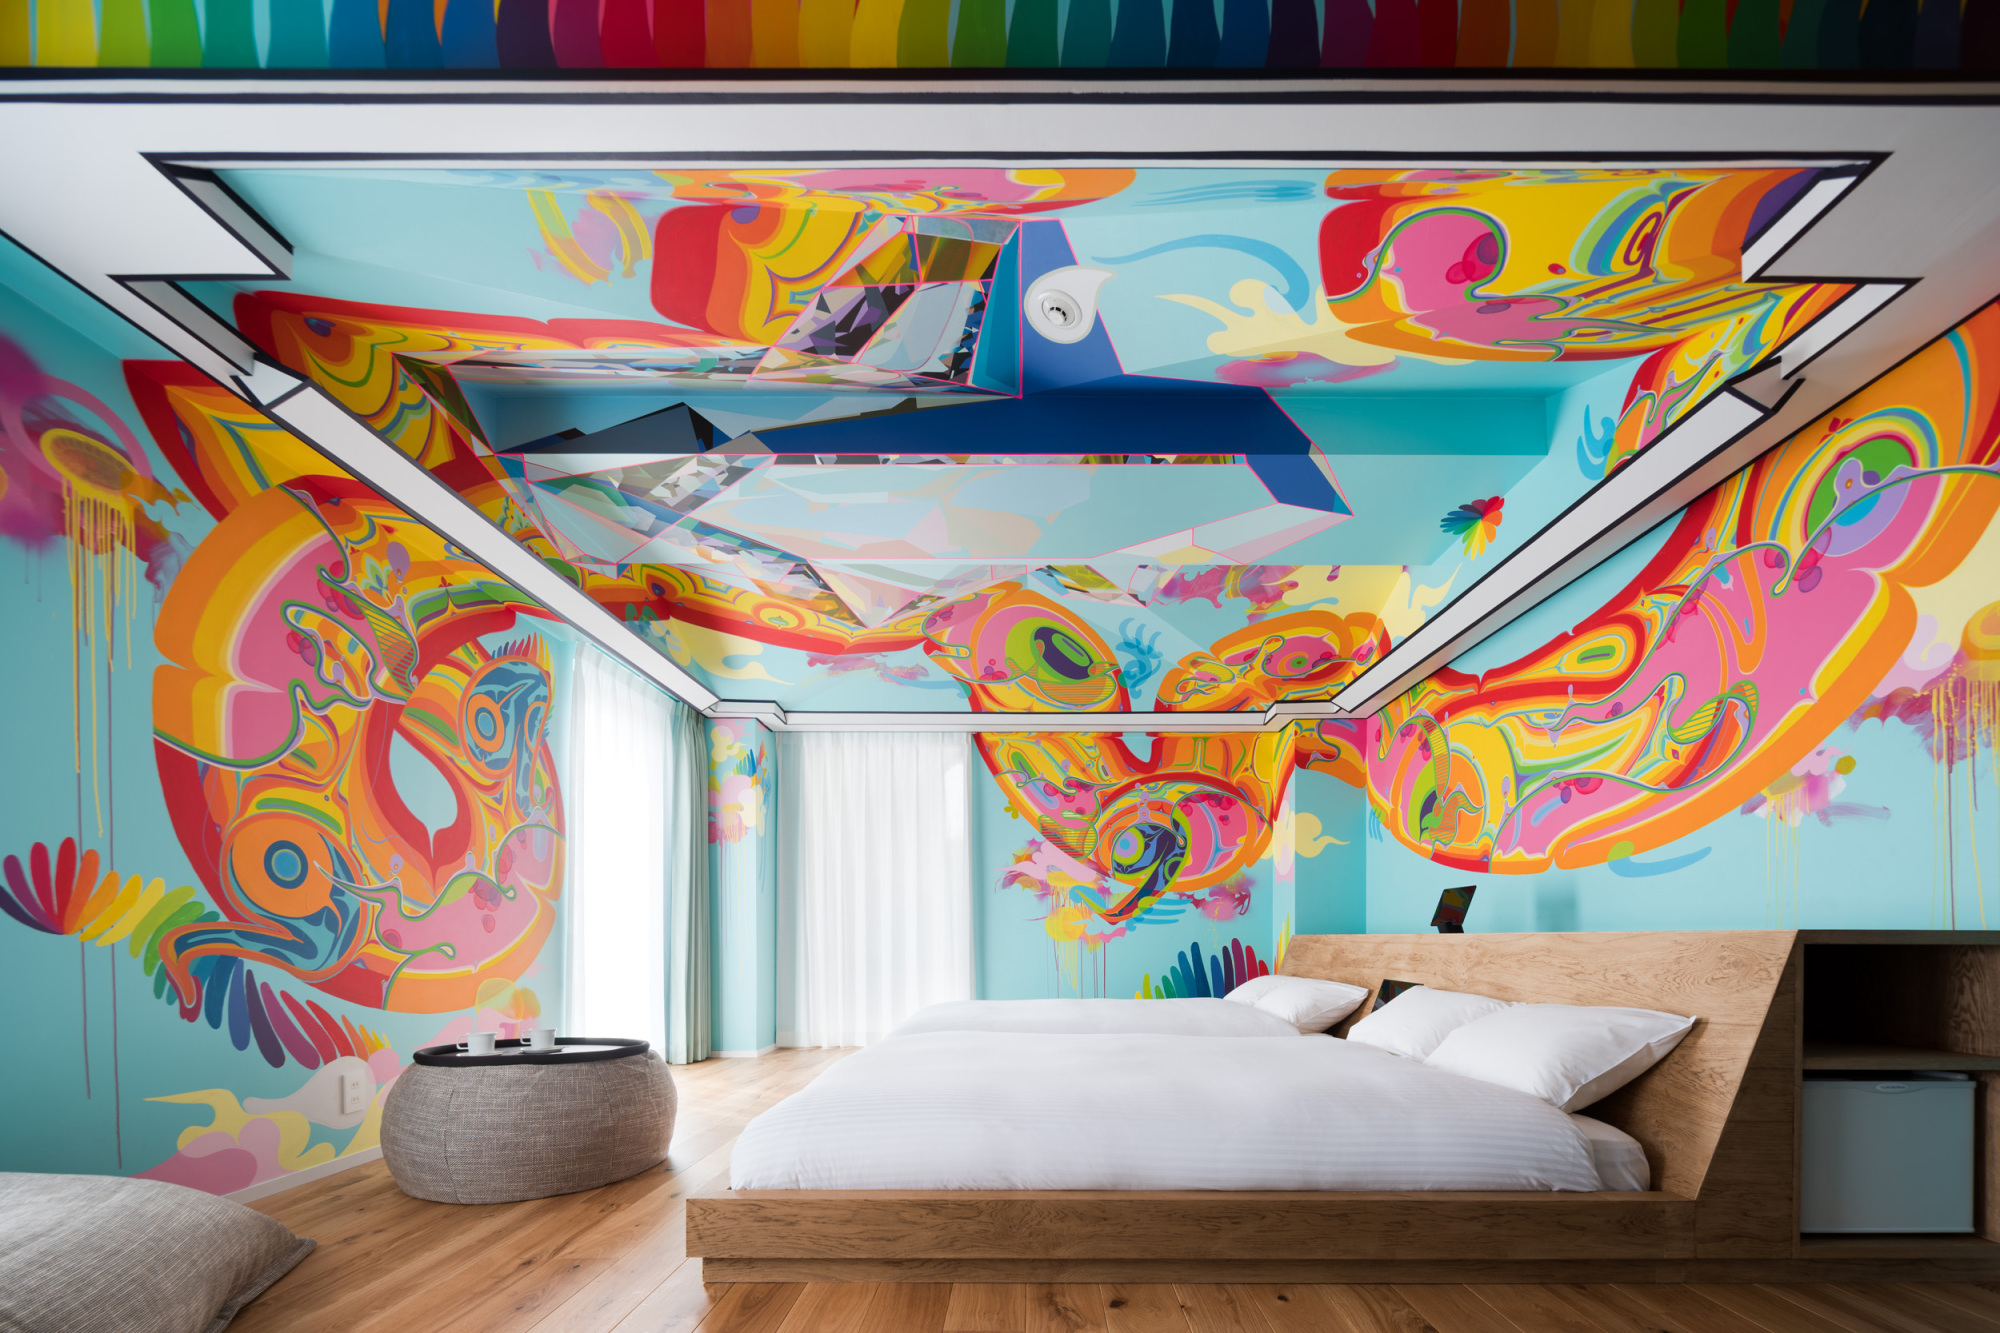 Artistic impact: Abstract art pops in the BnA Alter Museum's 'Nextefx' room, designed by artist Mon Koutaro Ooyama. | TOMOOKI KENGAKU